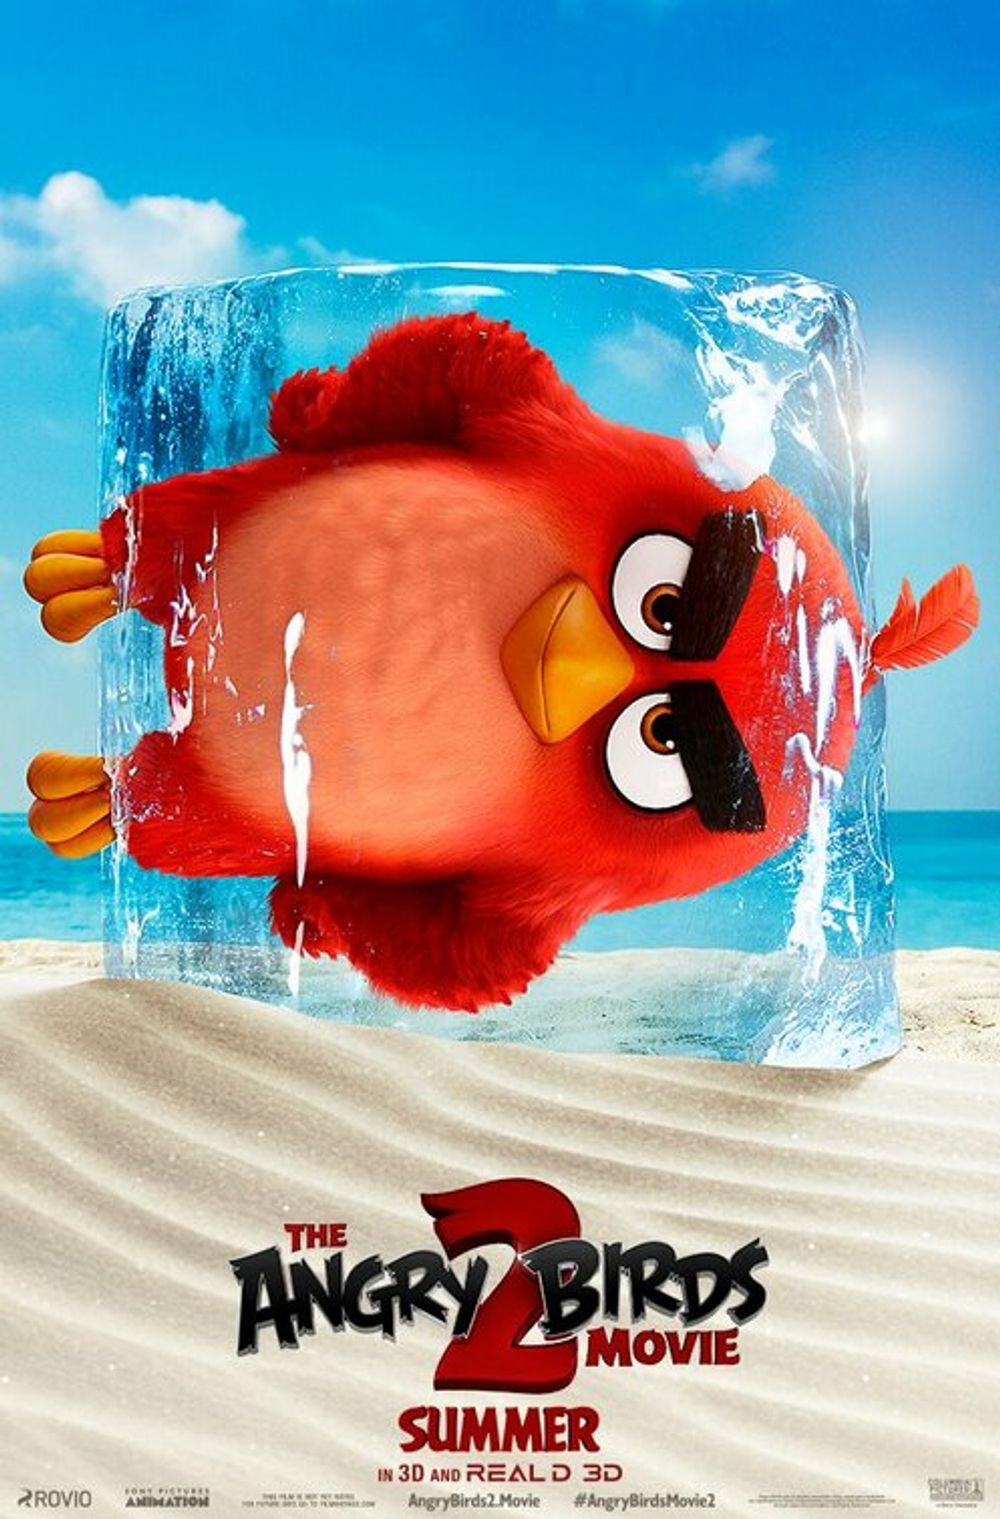 5-The Angry Birds Movie 2